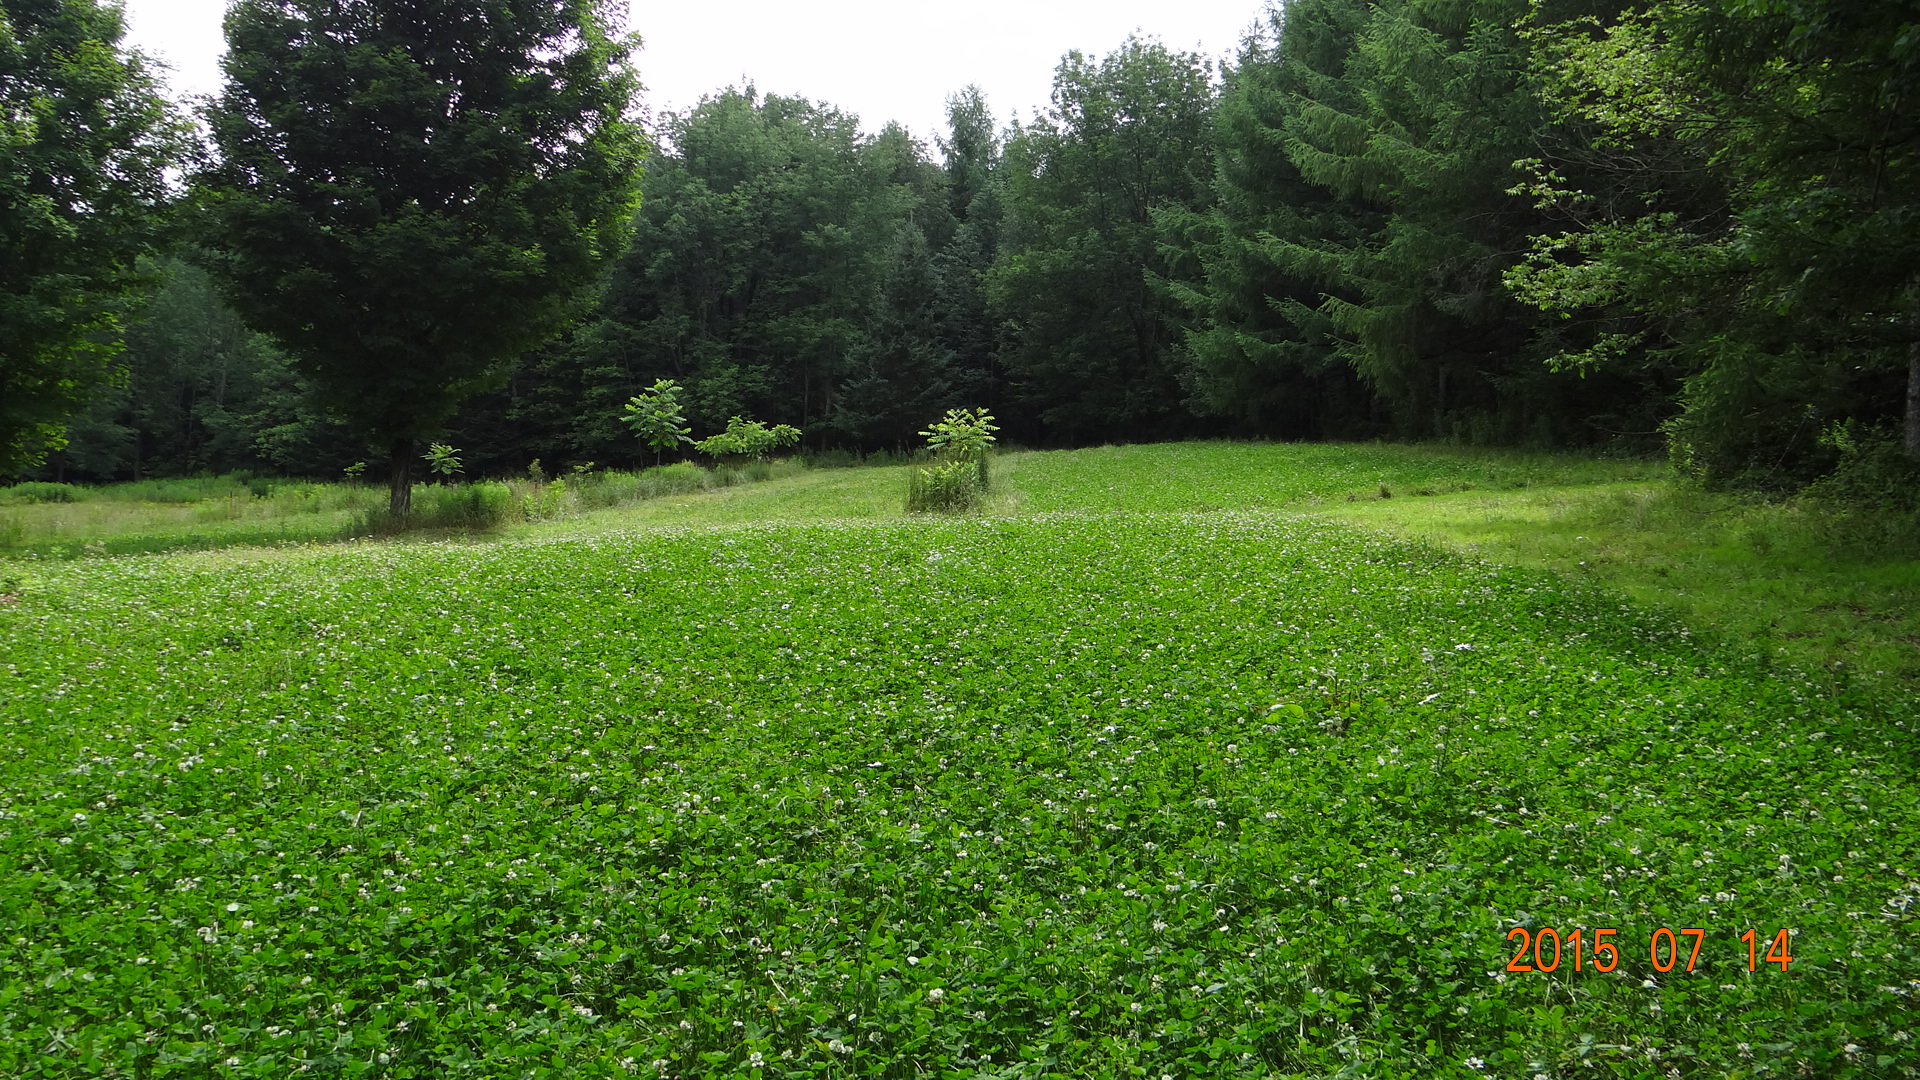 Late Summer 2014 Planted Whitetail Clover